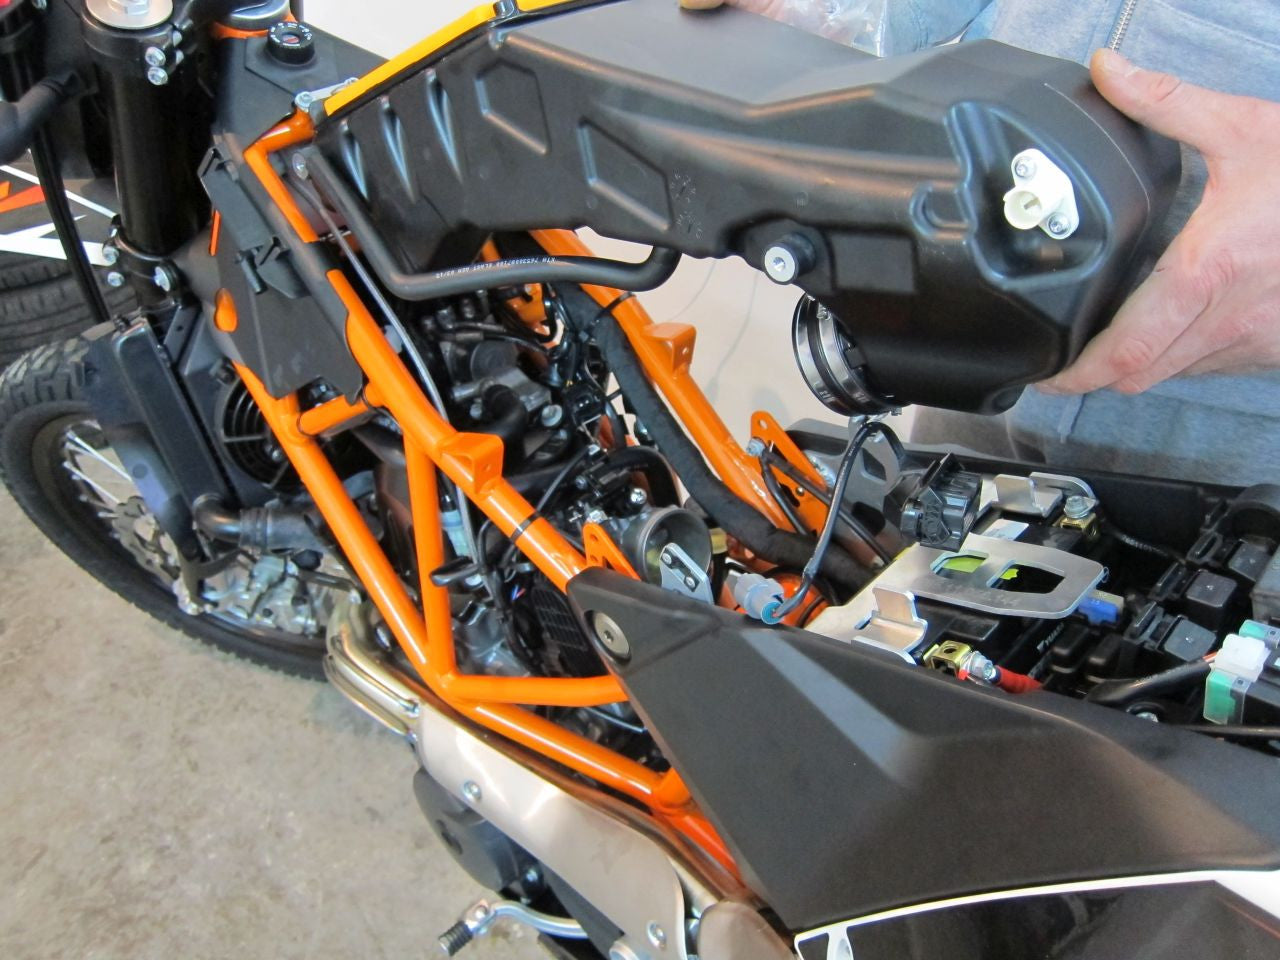 Ktm Wire Harness Routing Simple Wiring Diagram Site Libraries Bundle How To Remove Air Box On 2014